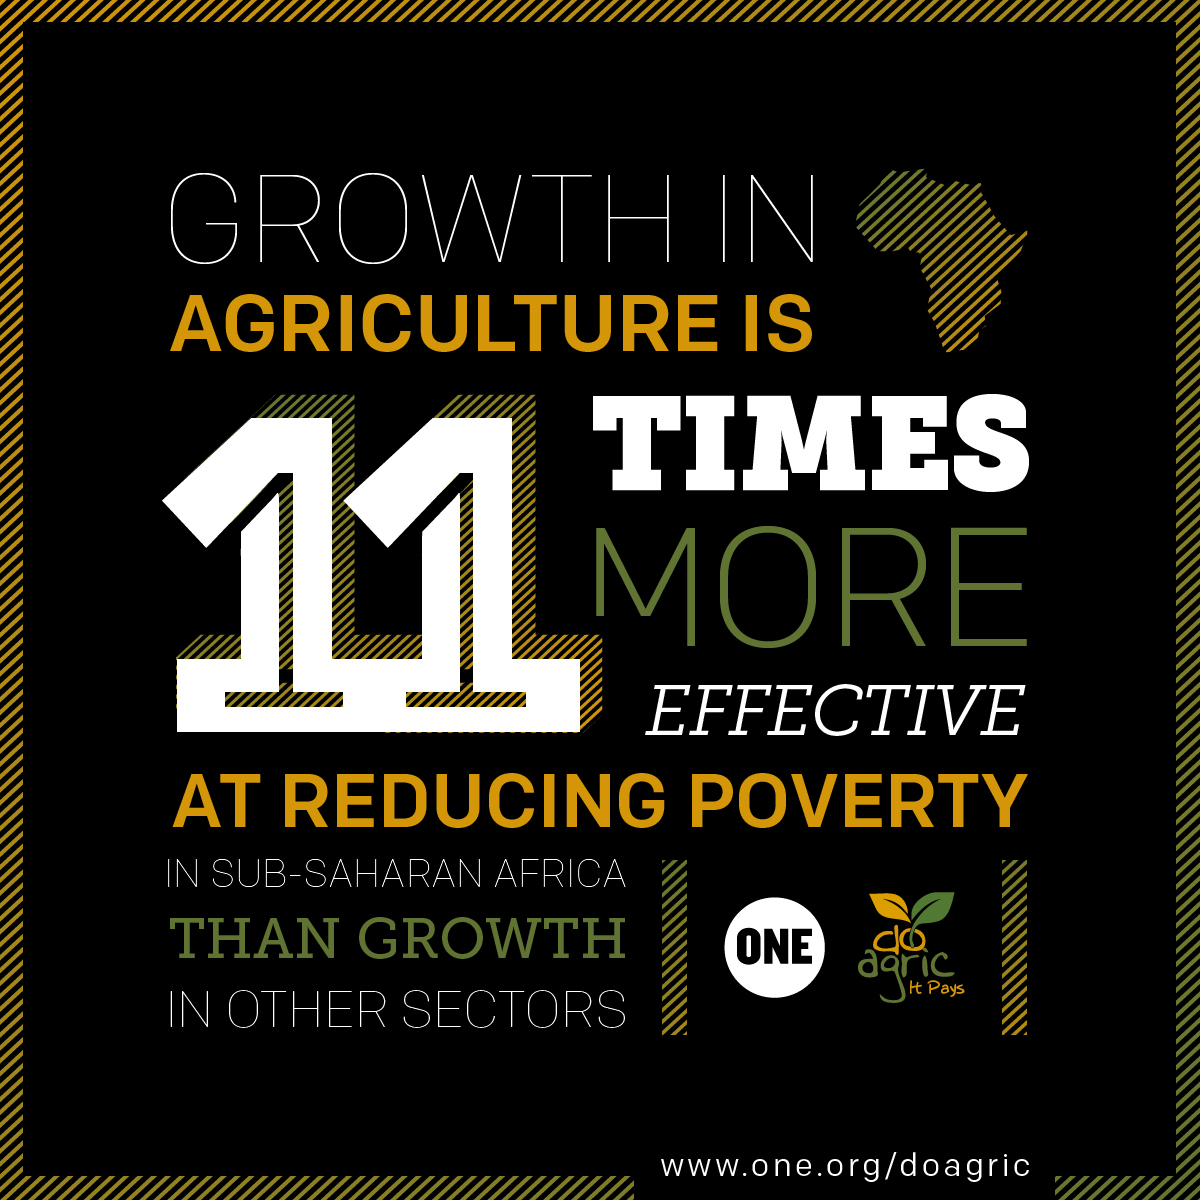 3 Facts that reveal Africa's huge agriculture potential